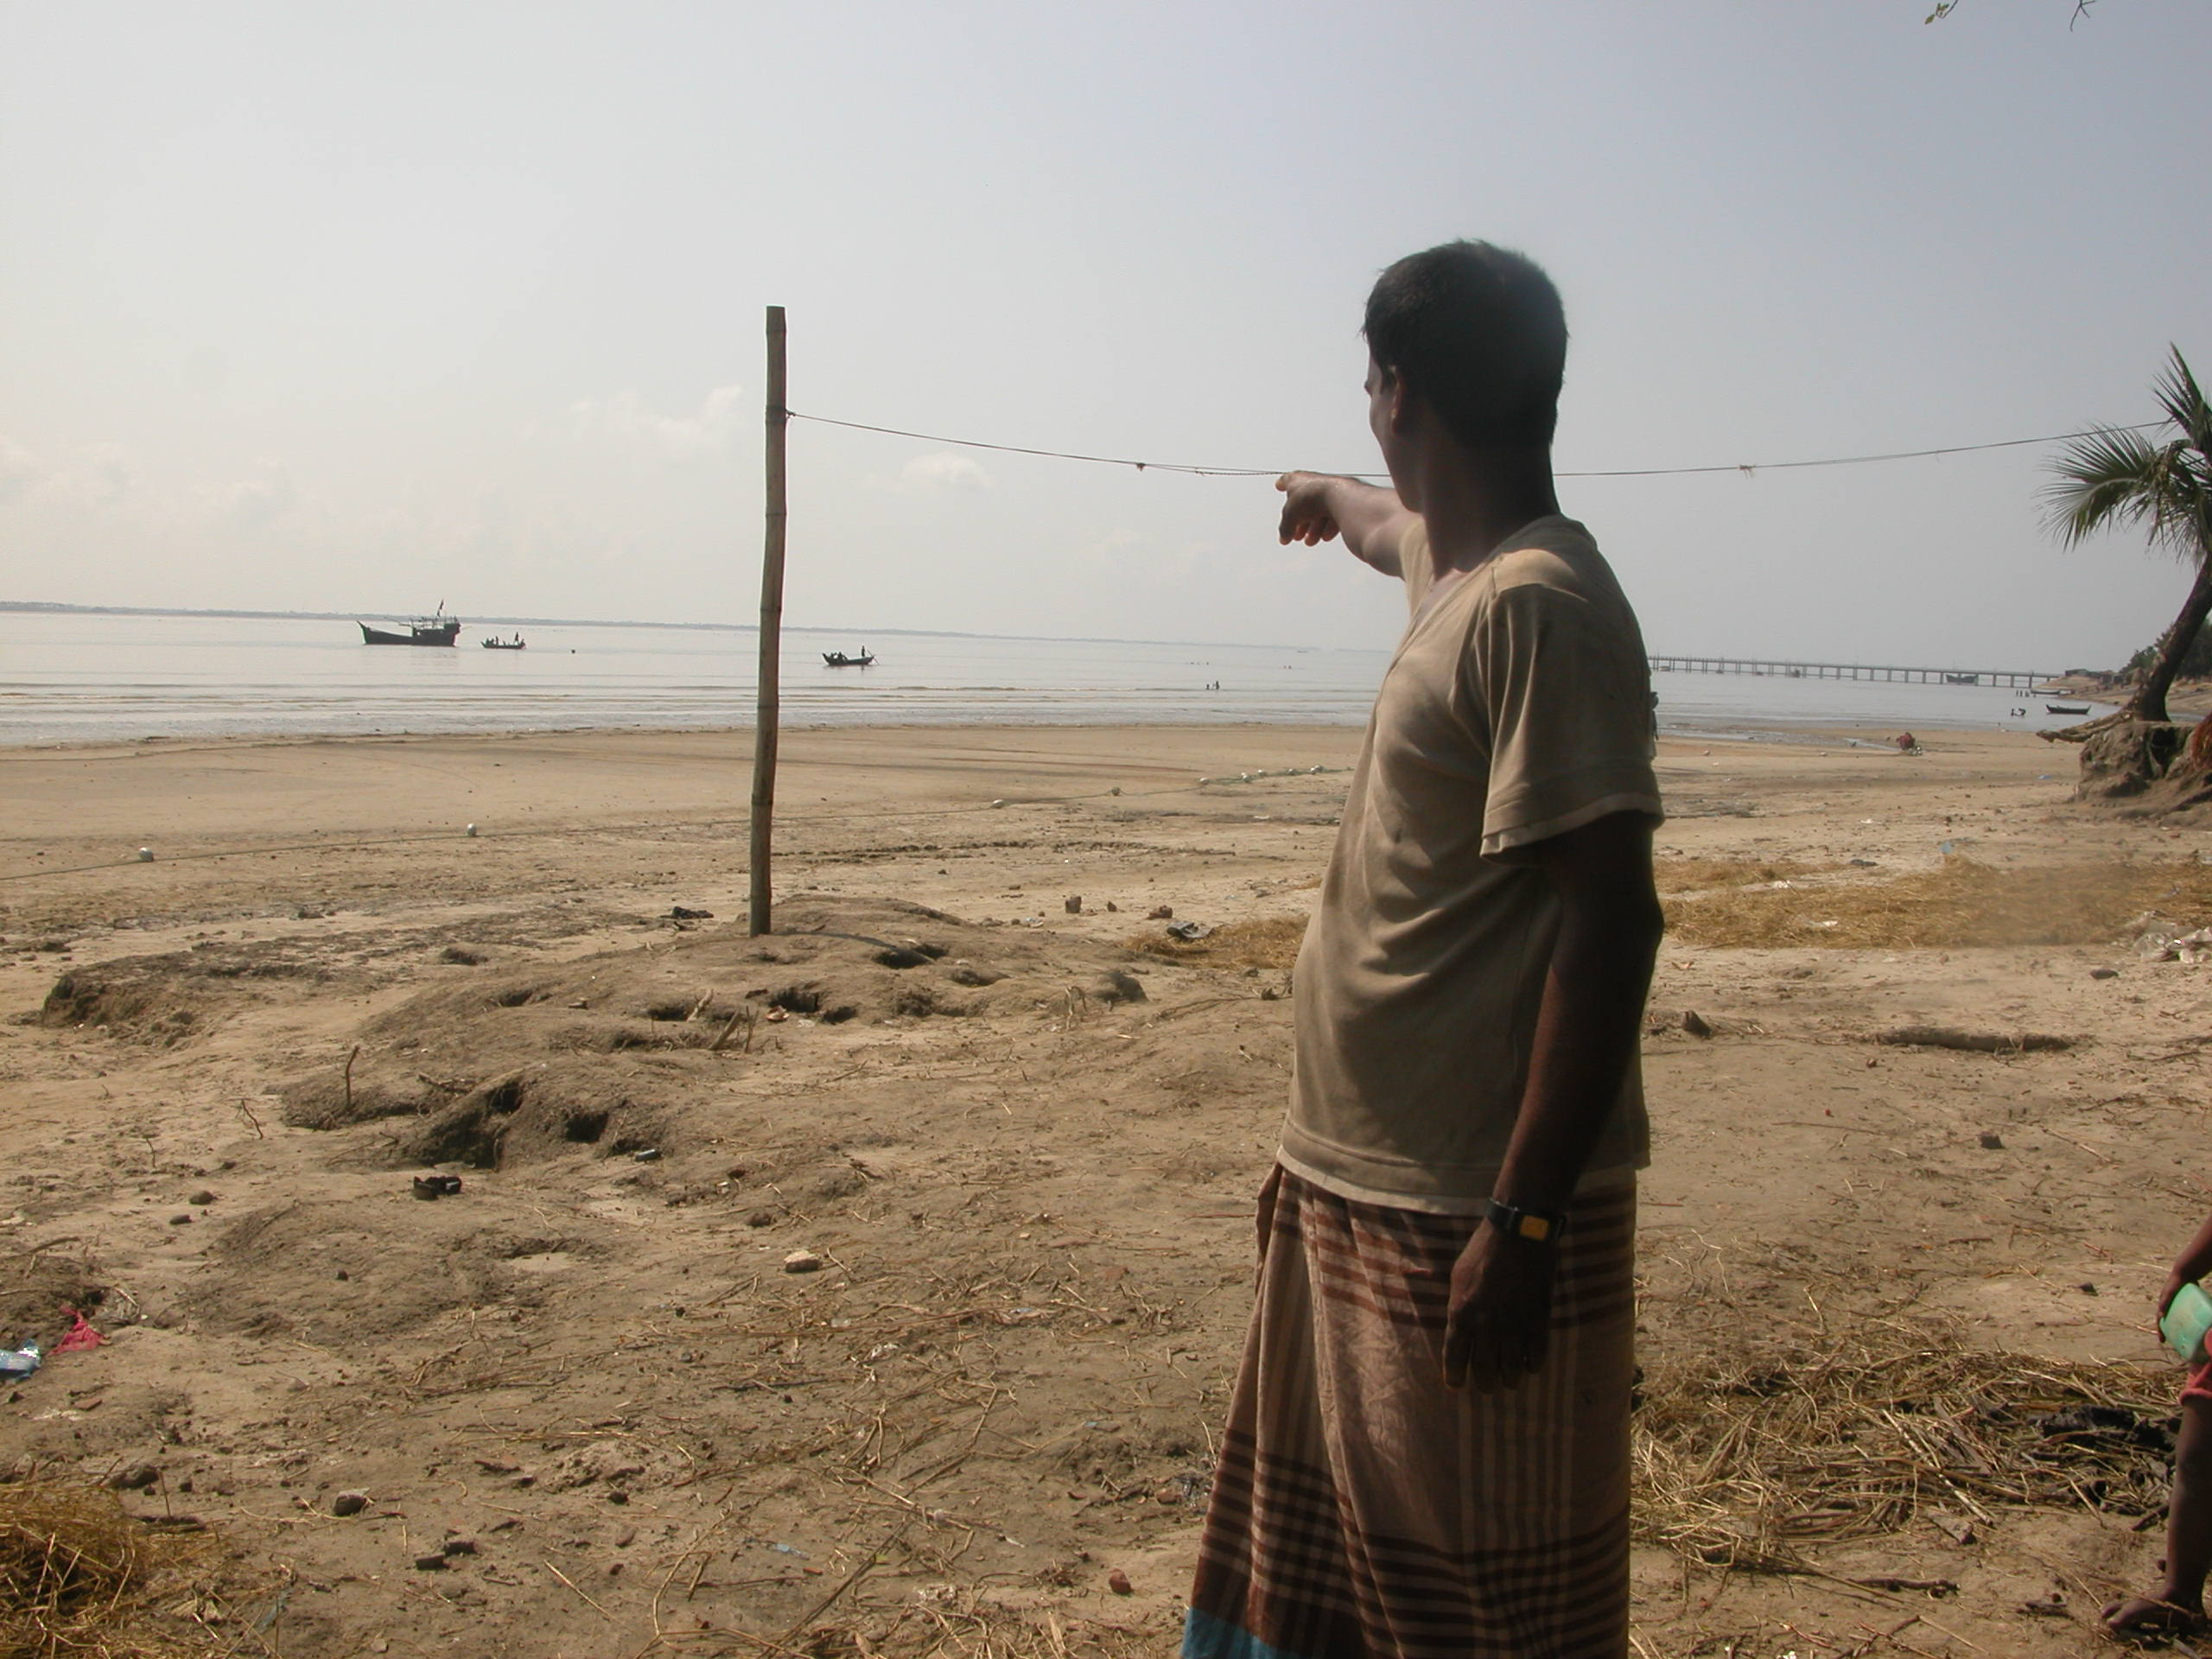 Ten years ago Kutubdia stretched out to where the boats are, says British Jawaldas, a fisherman